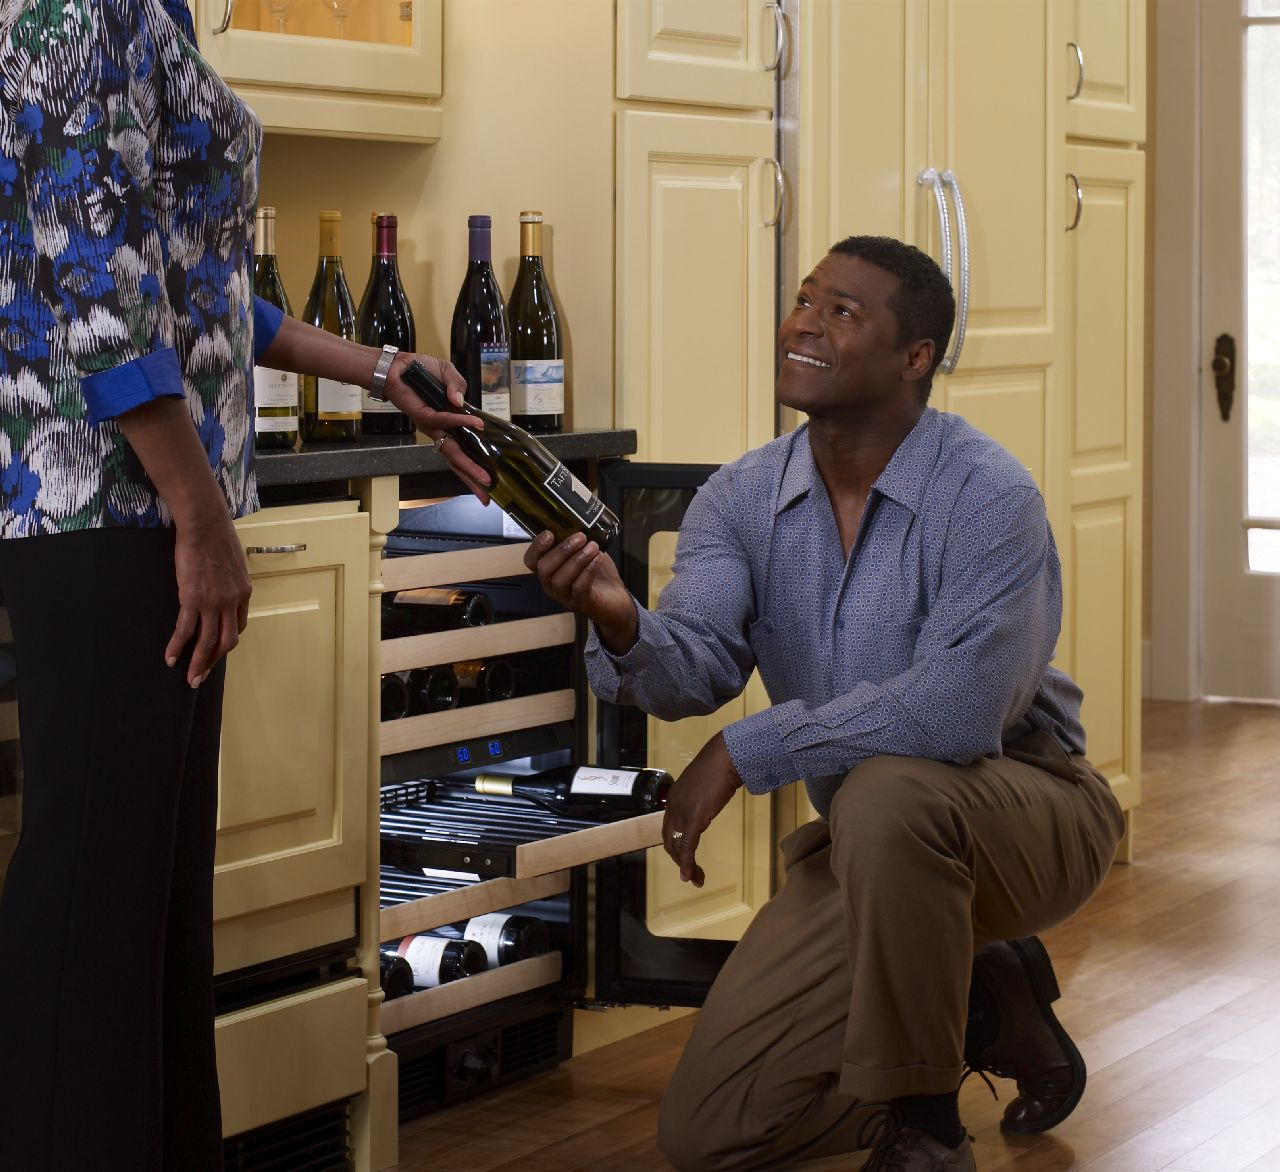 Just decant deal with your wine cooler? Chill! Tips are here!